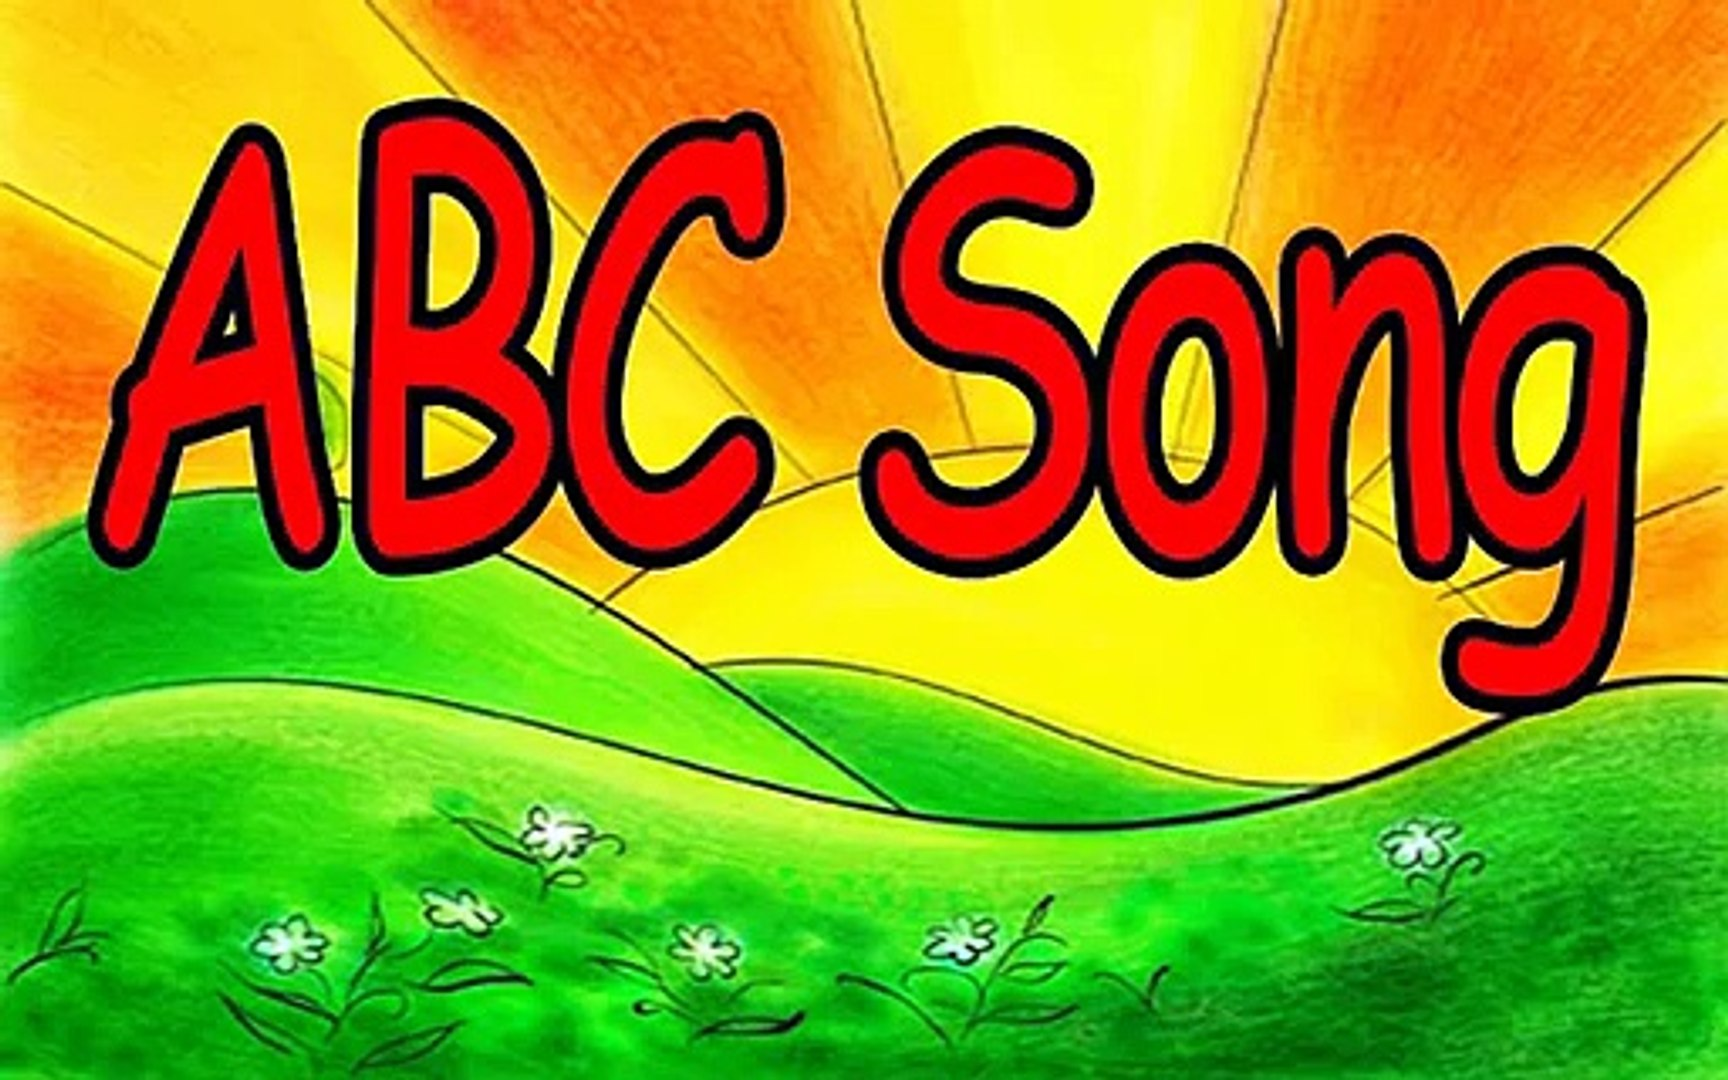 ABC okay google my ABC SONG 123456789 123 ABC Song Kids Alphabet song 123 ABC song Child S